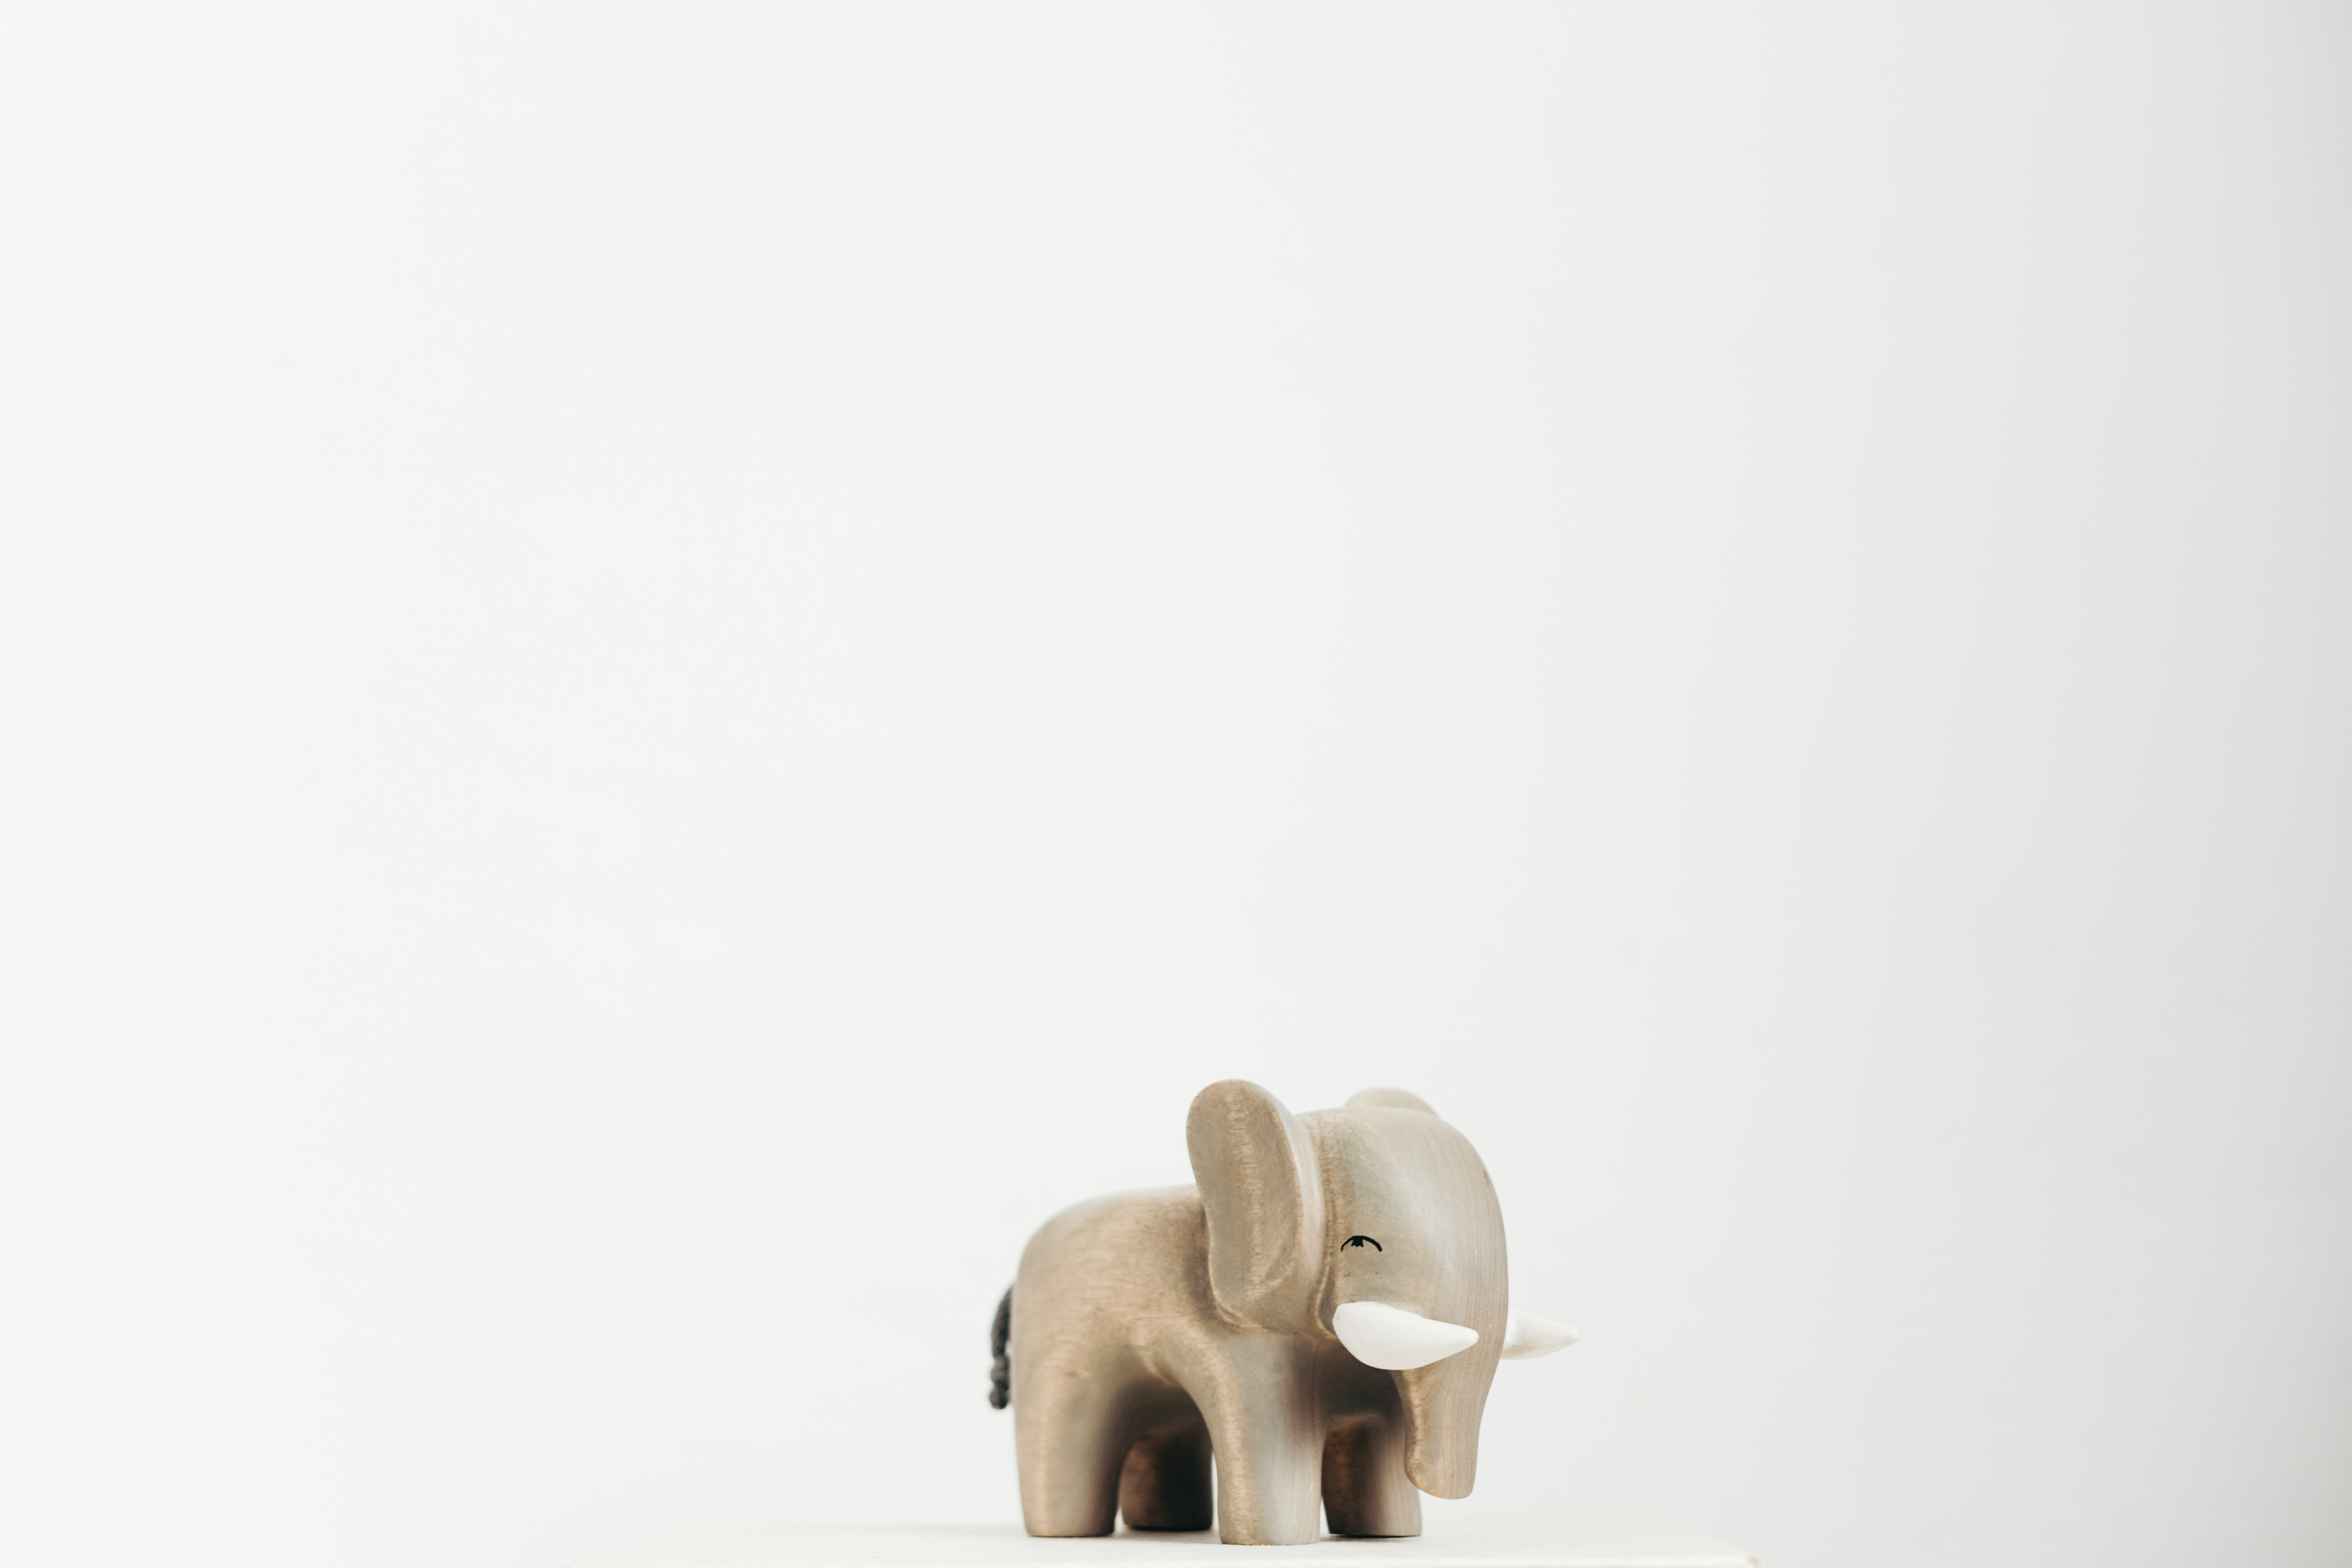 Wooden Elephant with White Background